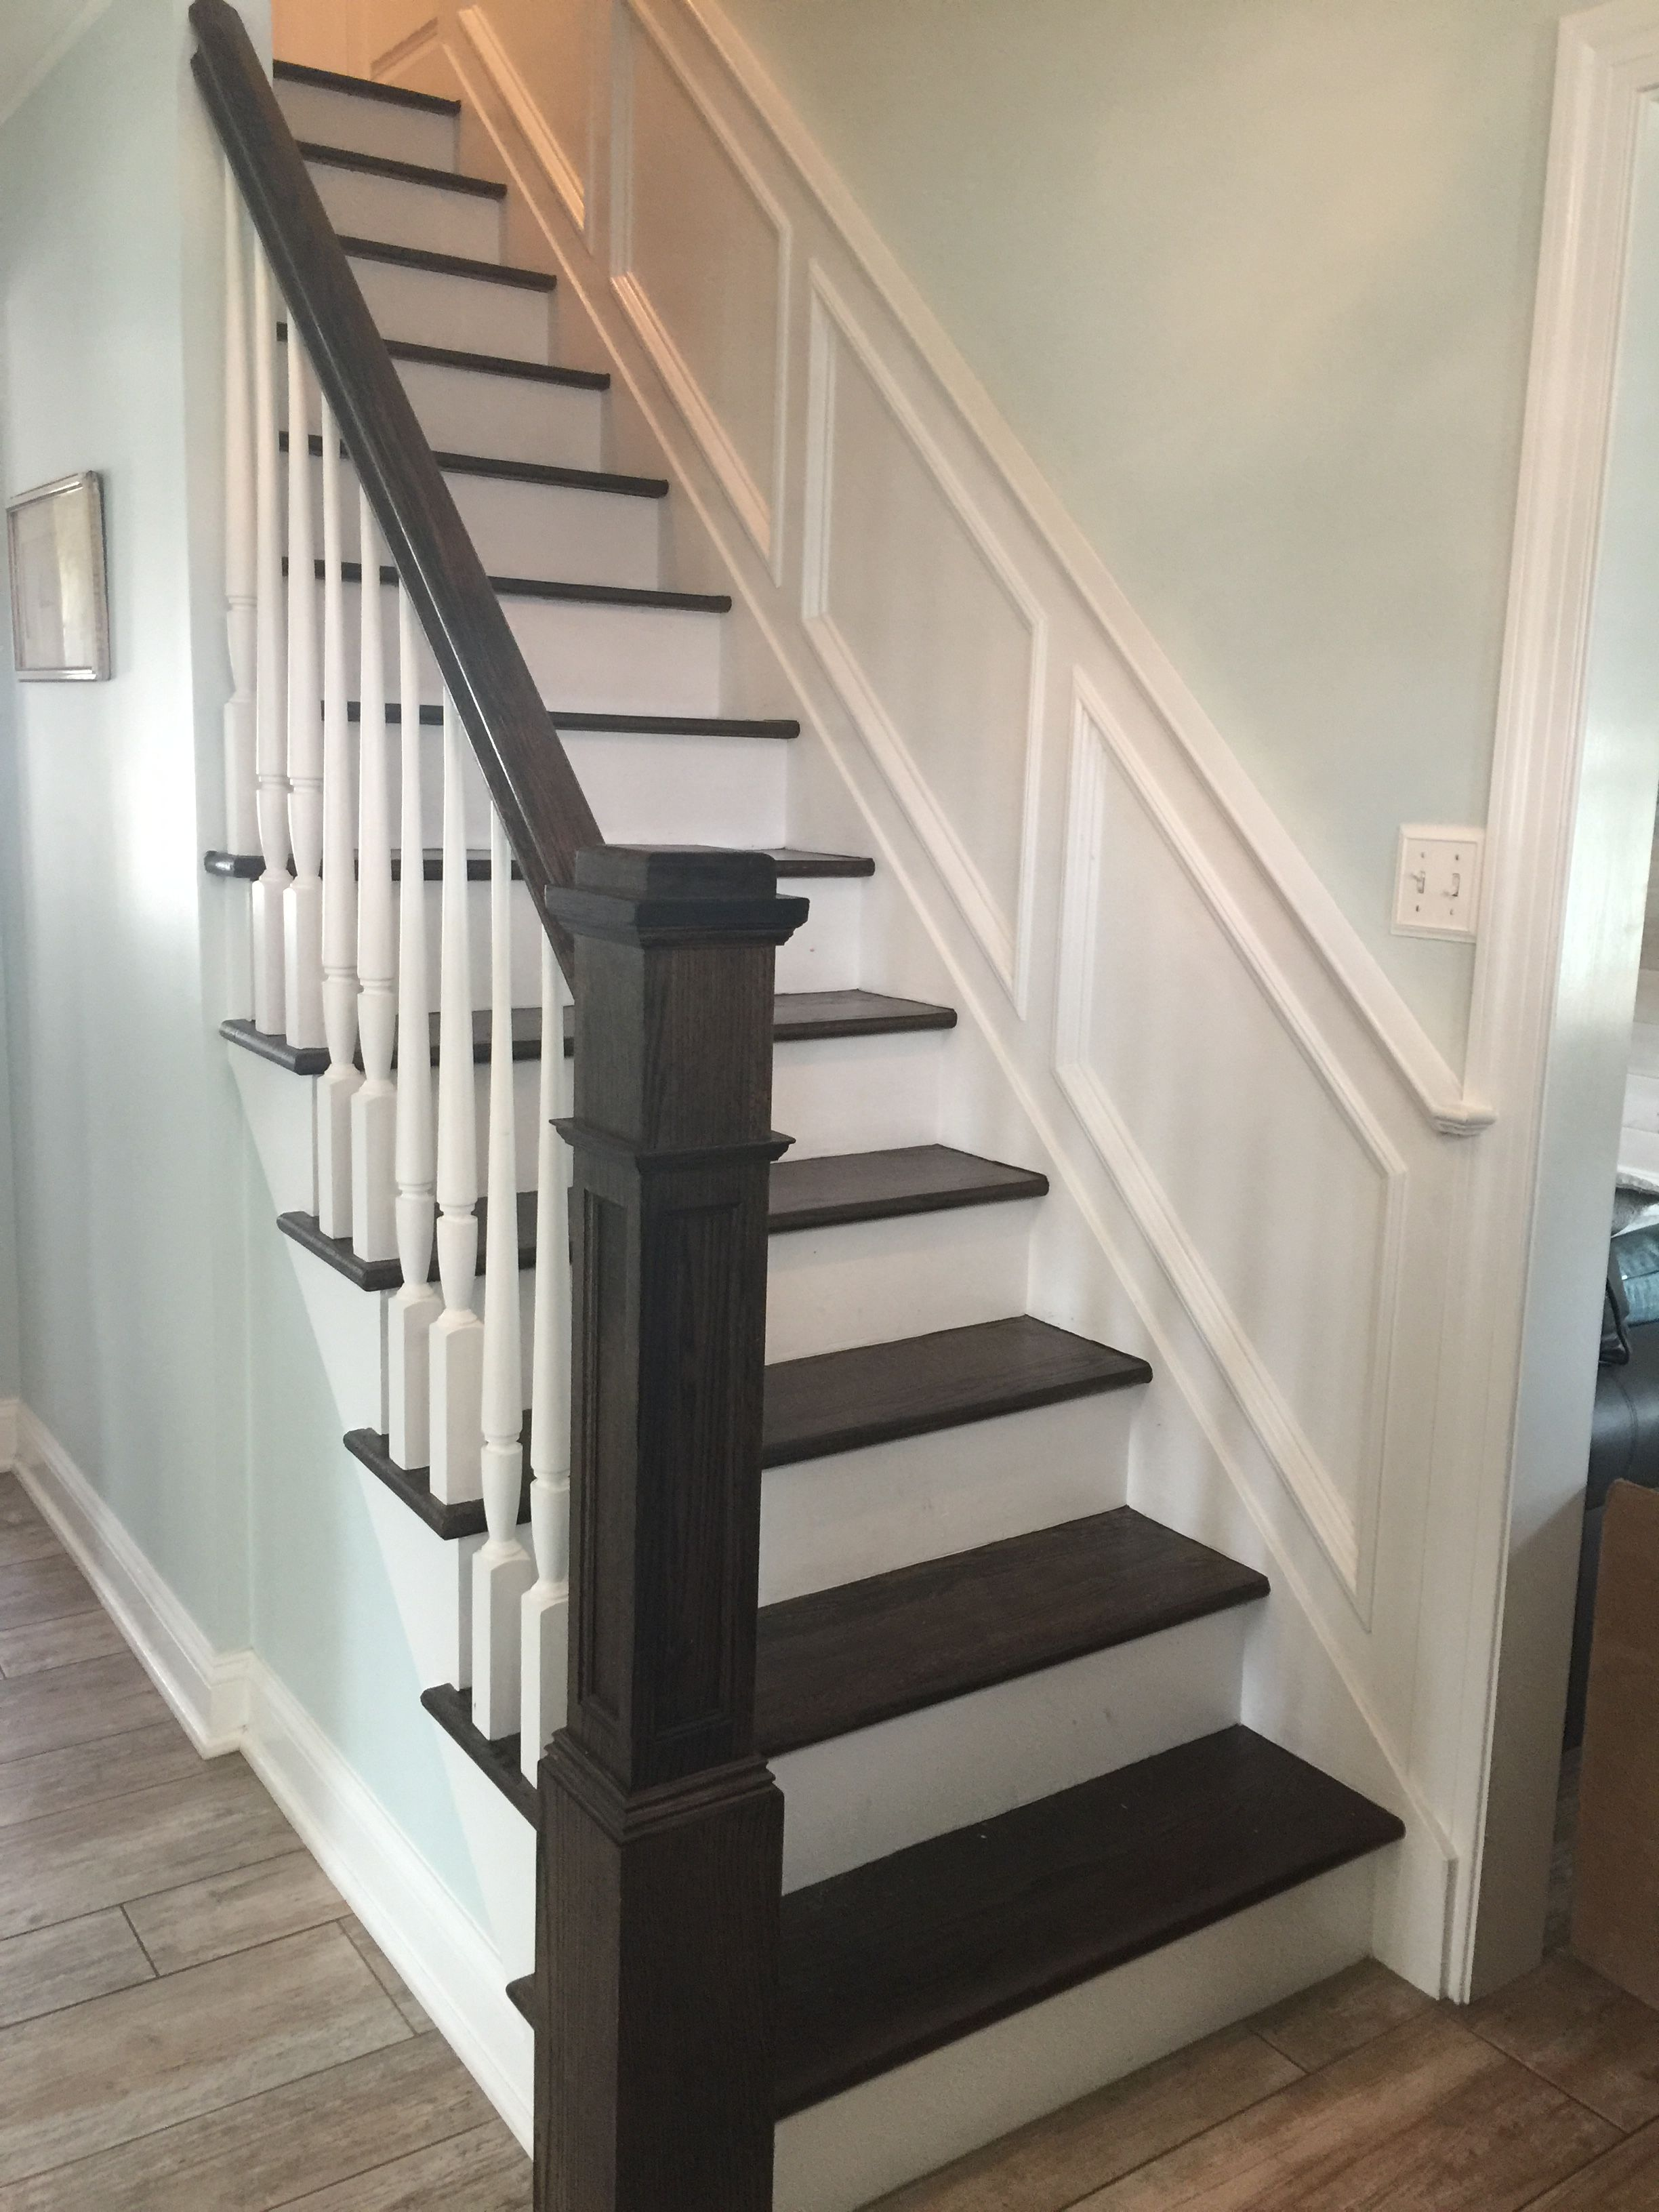 Moulding Wall Treatment At Stairway Grace Lily Design Pinterest